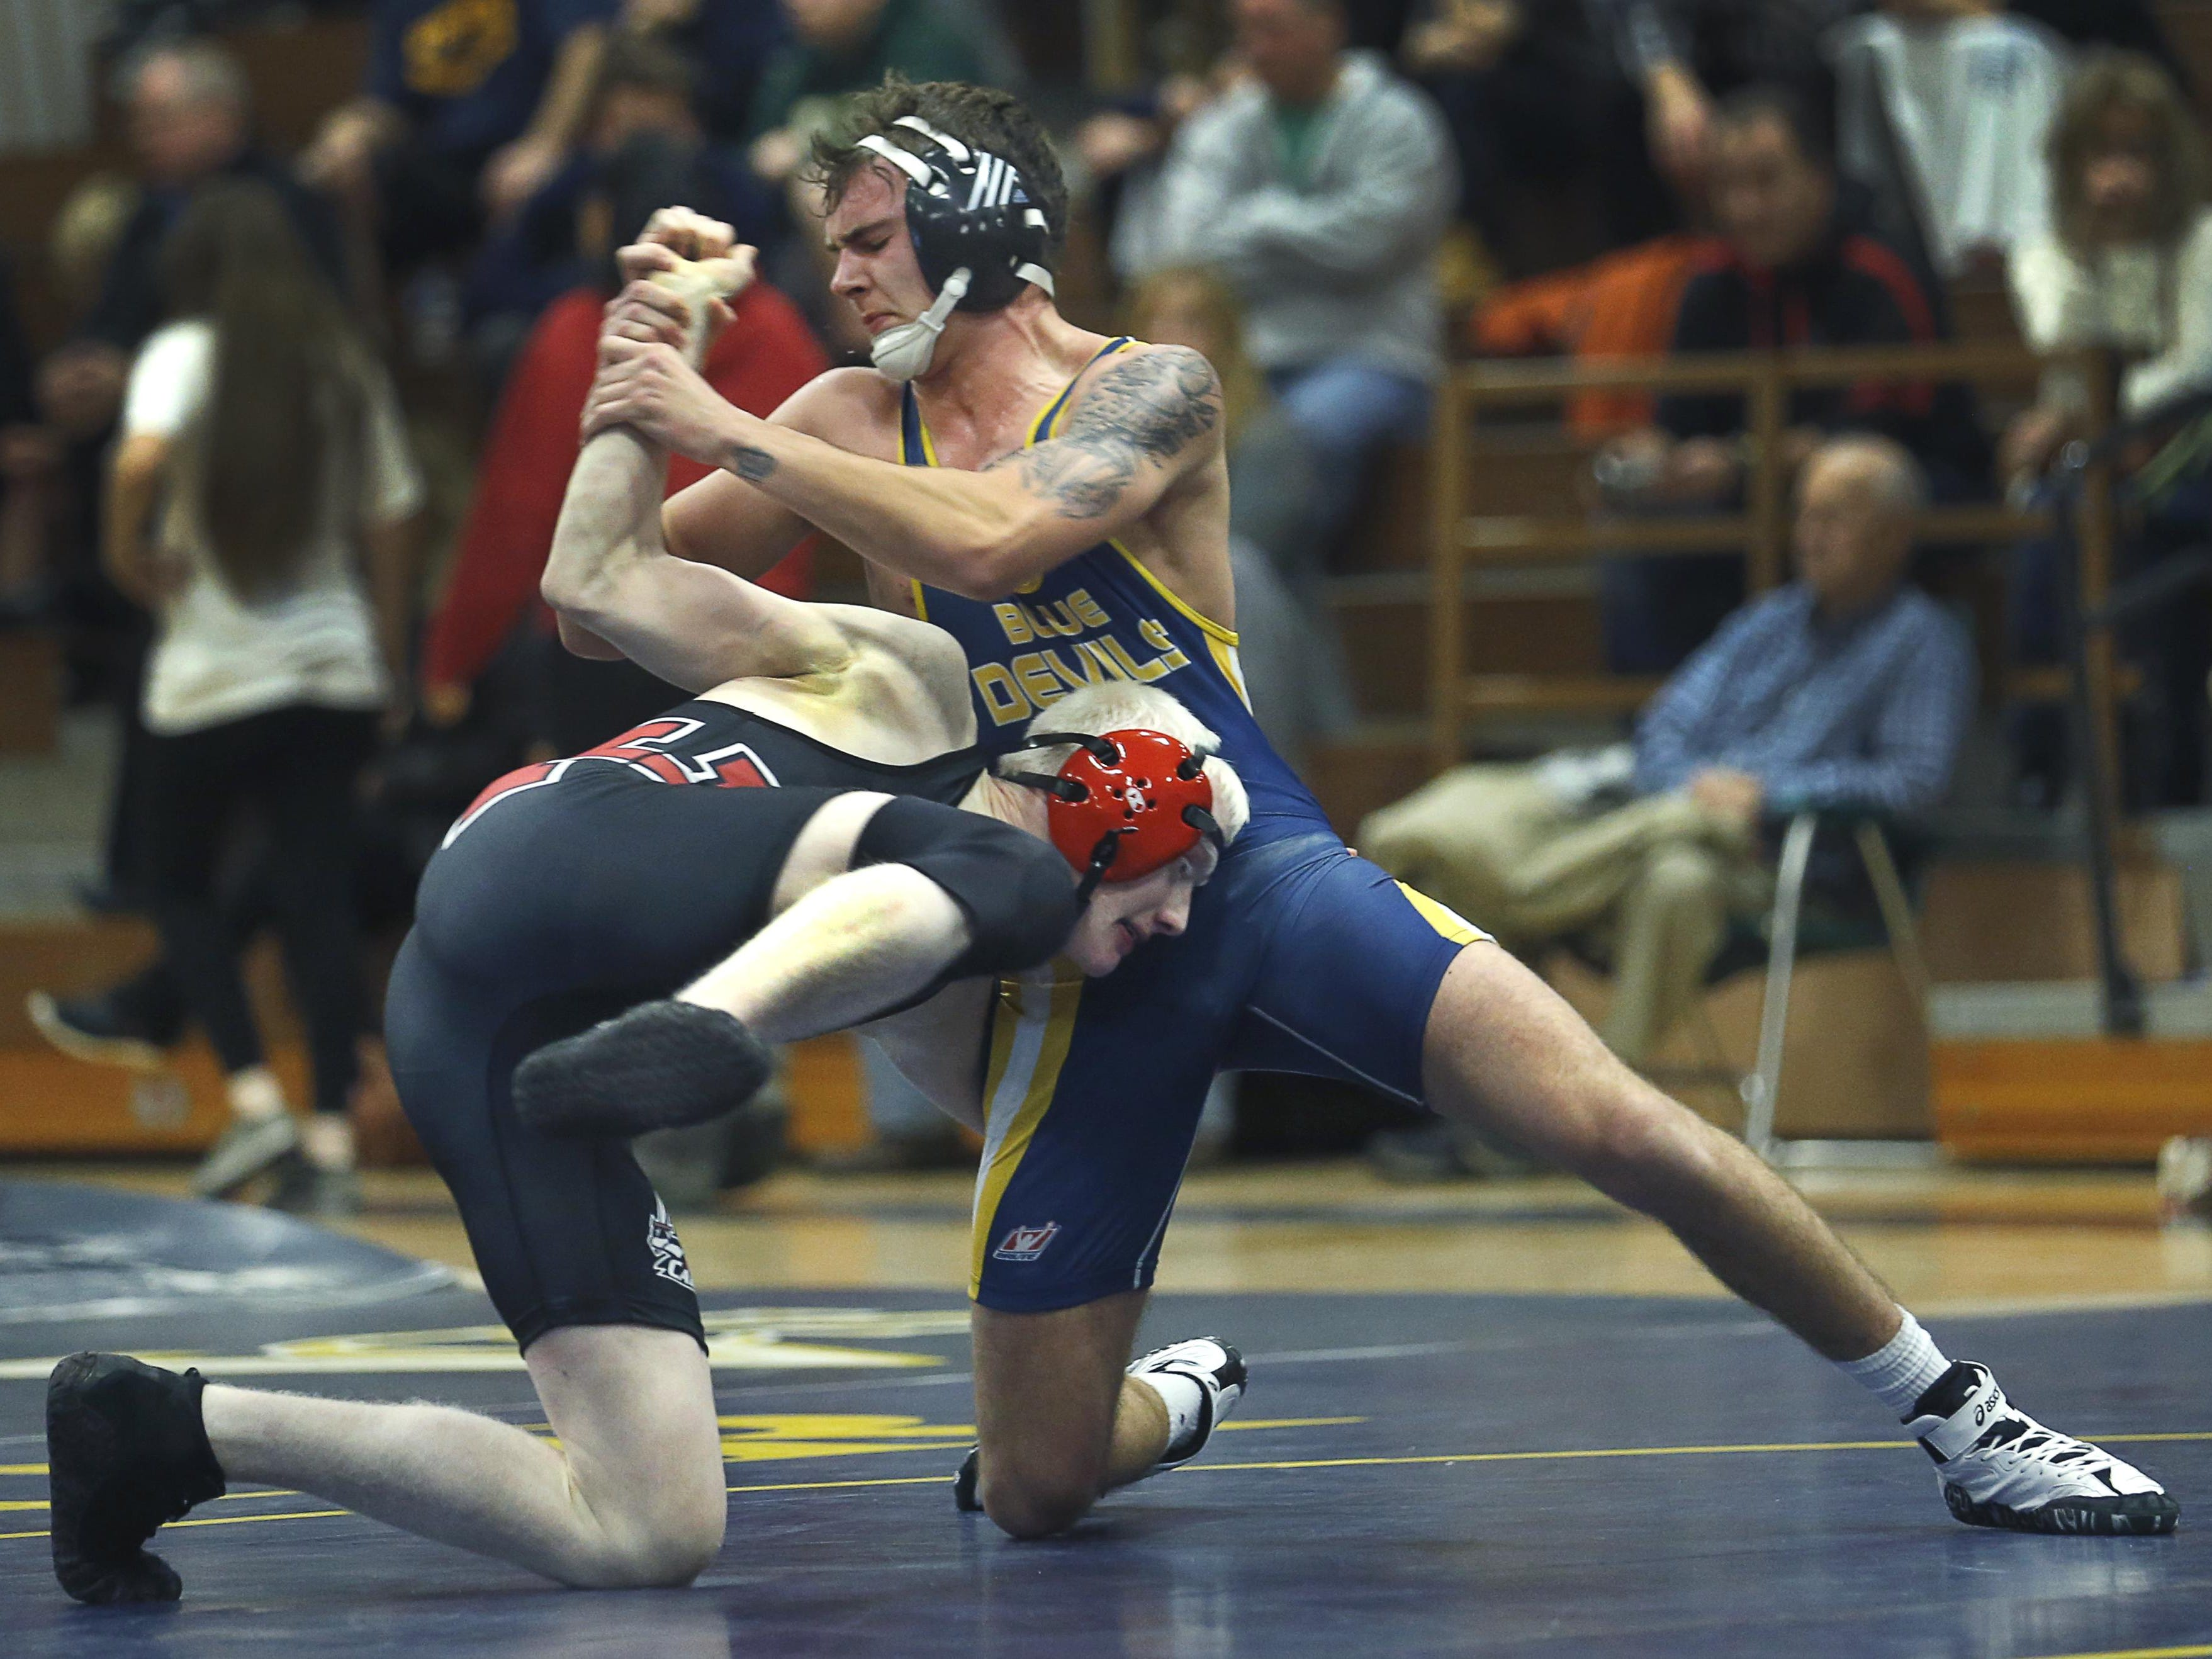 Victor's Nate Fedick defeated Hilton's Tom Foos in the 145-pound weight class at Victor High School.